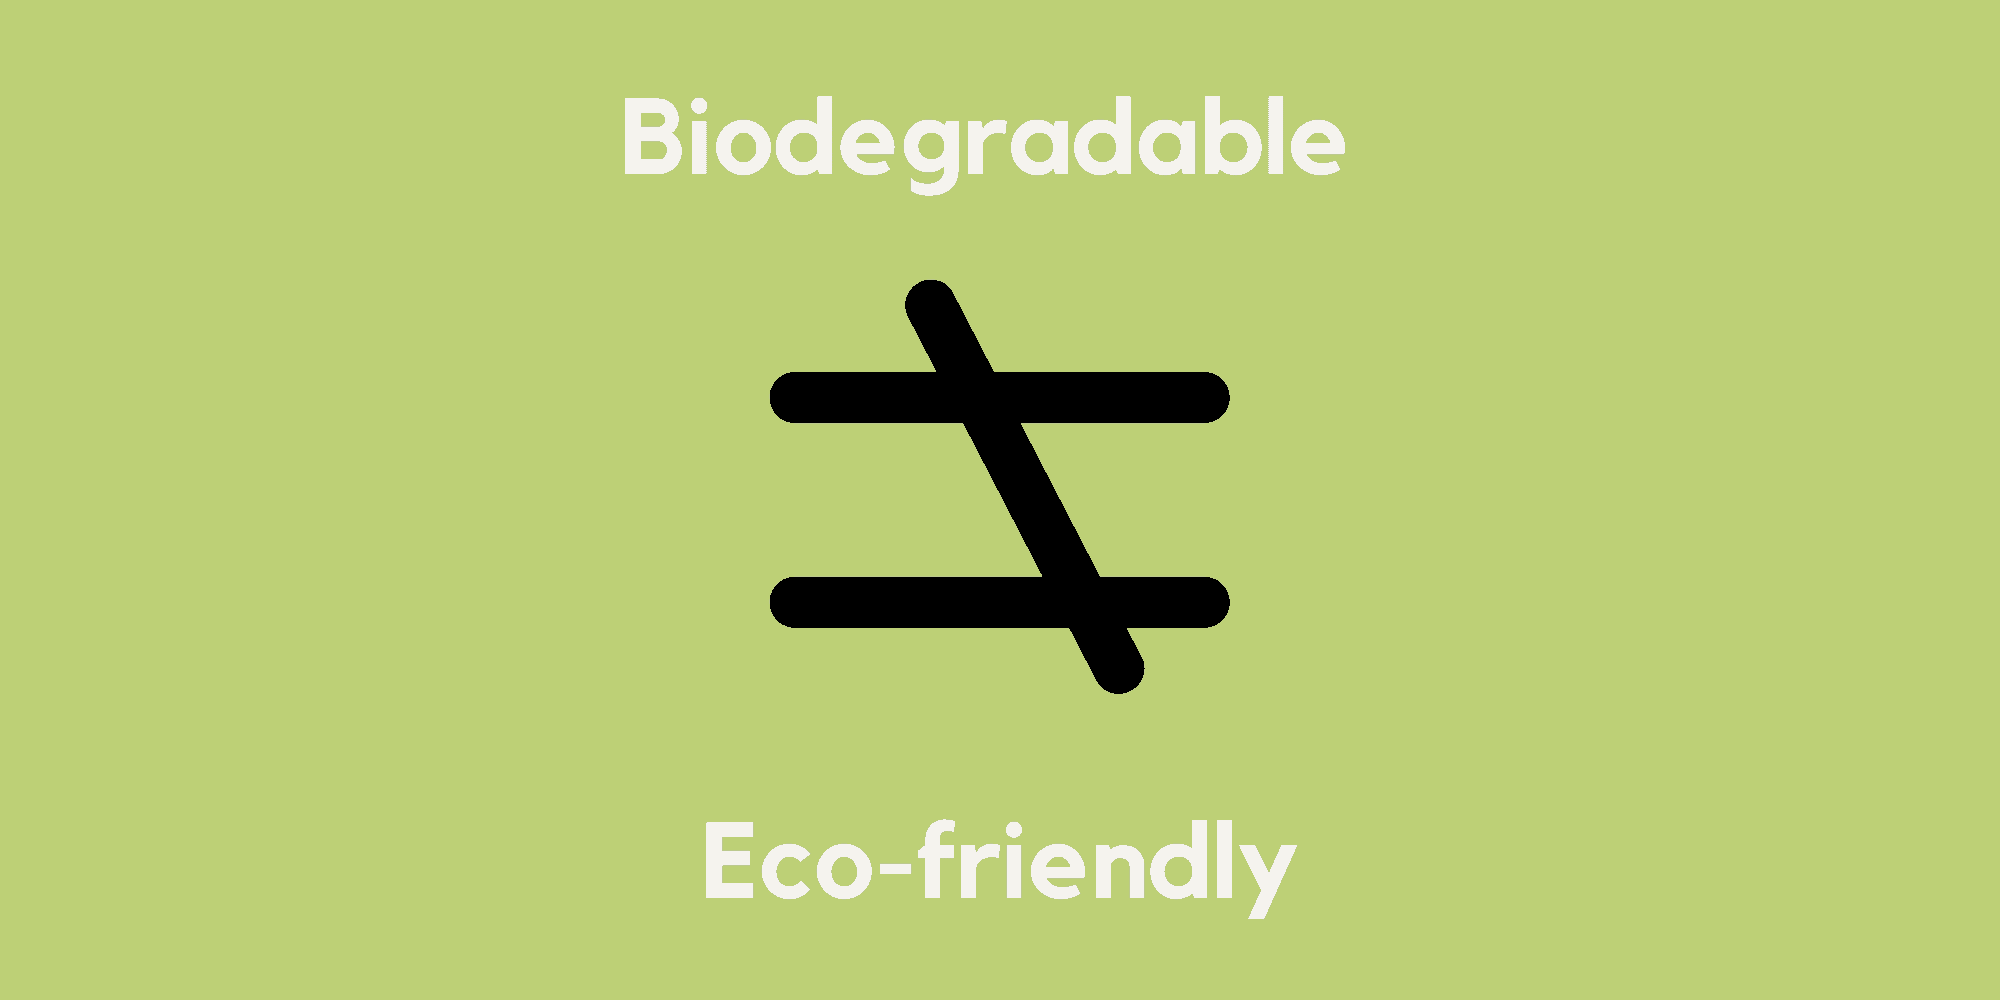 Biodegradable does not equal eco-friendly